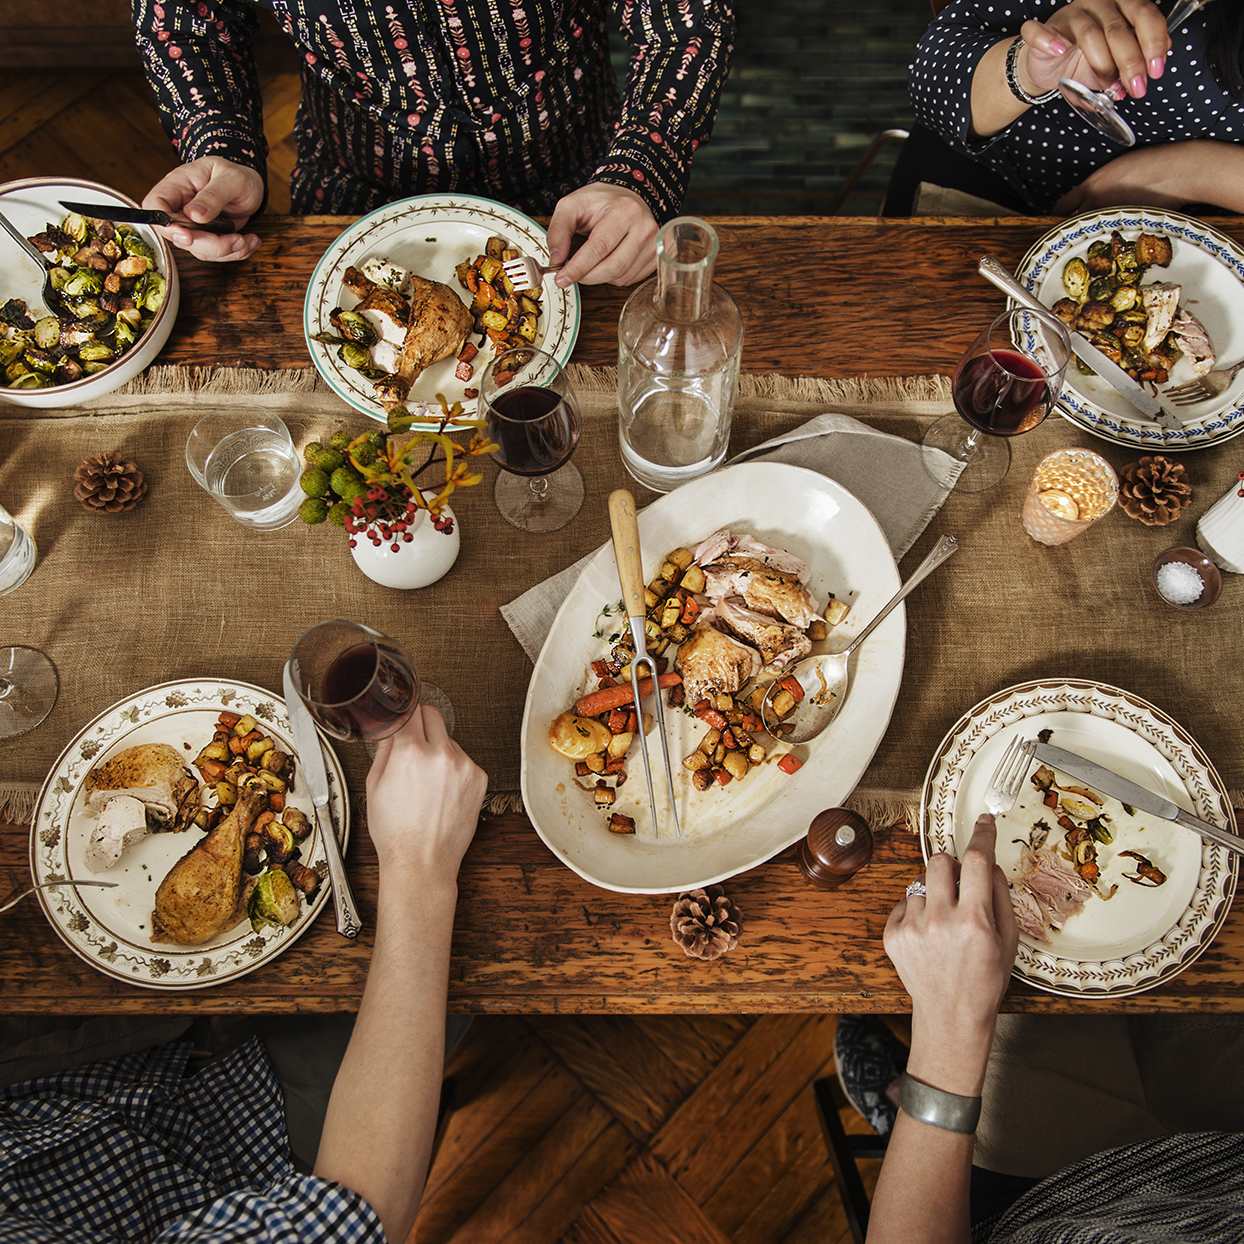 Group of people eating thanksgiving dinner with Turkey, red wine, Brussels sprouts and vegetables